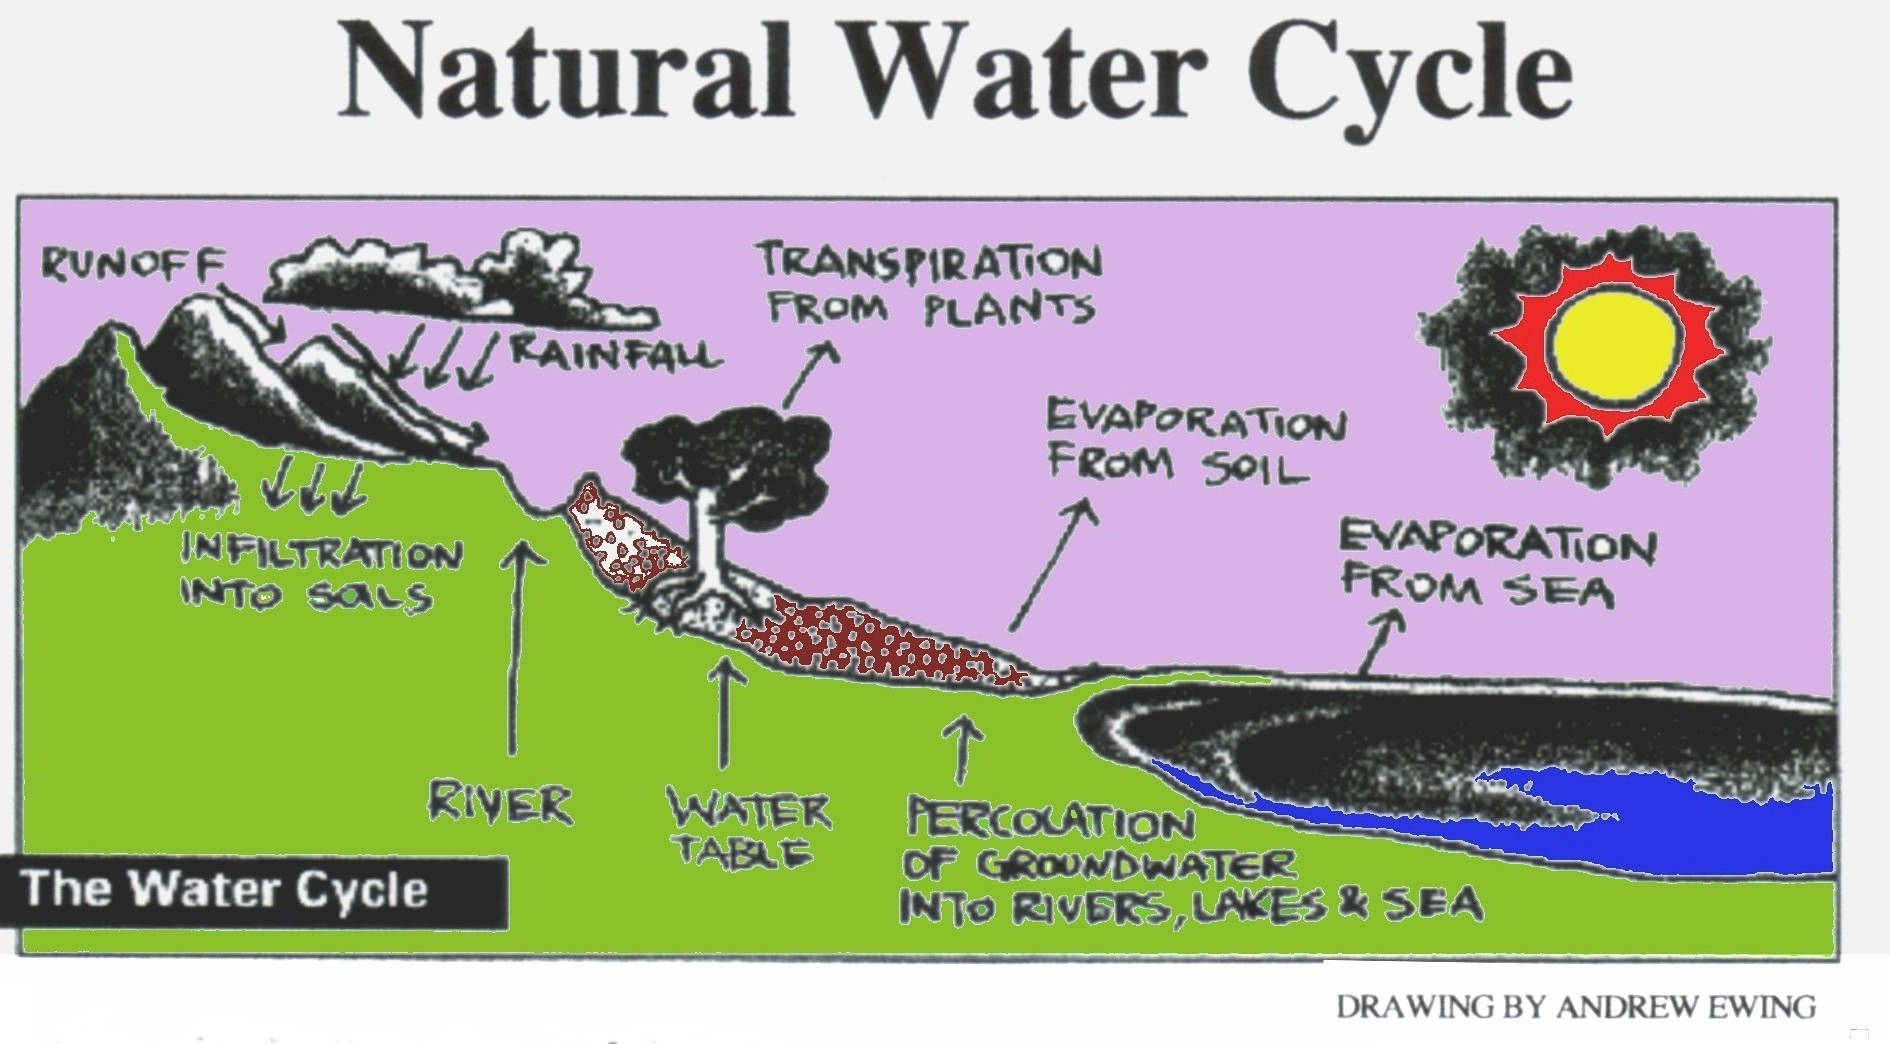 Water cycle drawing, WikiCommons